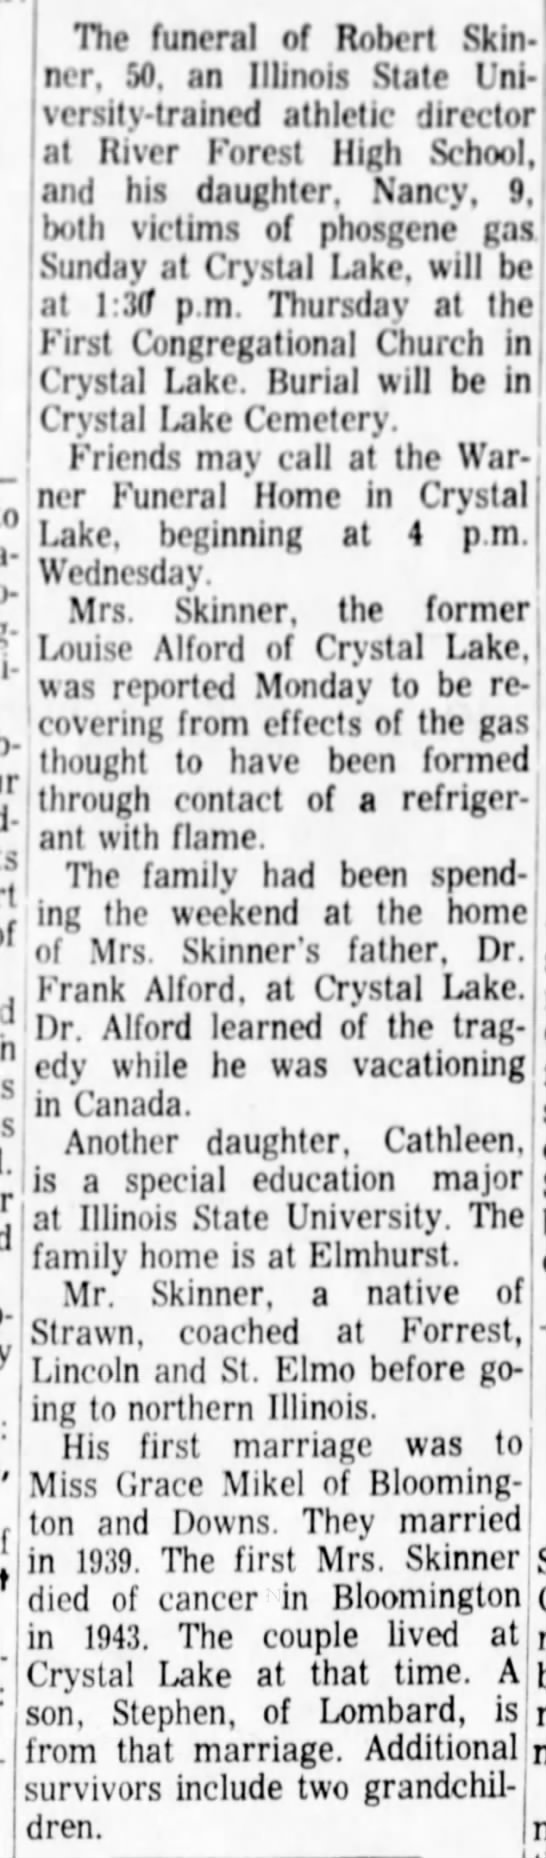 """Obit.  Robert Skinner.  The Pantagraph, Bloomington, IL.  21 Sep 1965, Tues.  Page 2. - in rVvcfal """"' ' , ' 4 'pm a-i a-i Wedncsd; ht-..."""